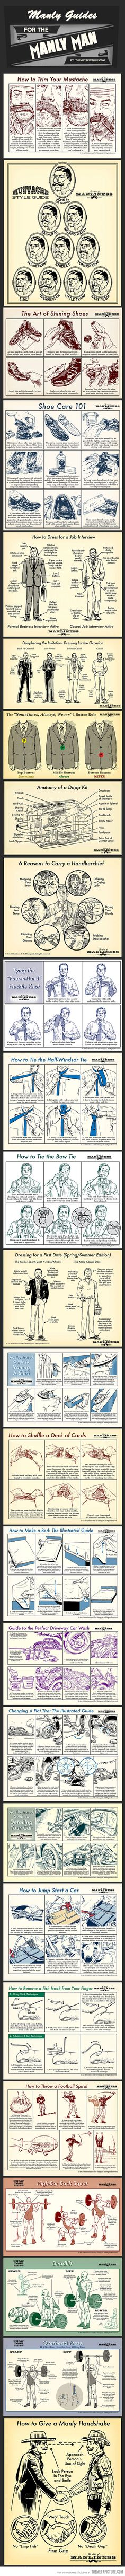 Manly Guides for the Manly Man…